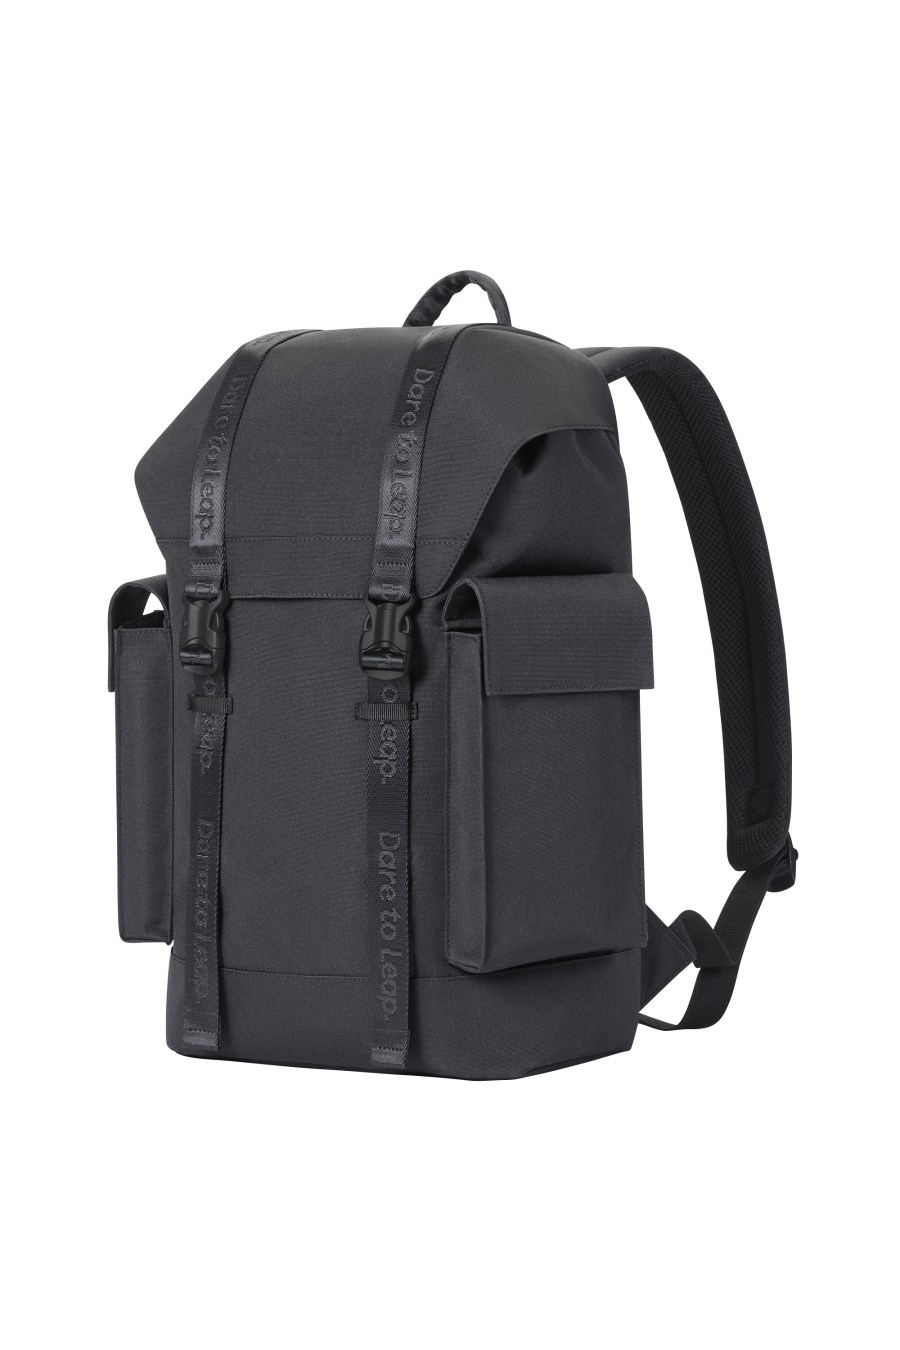 realme Adventure Backpack 2